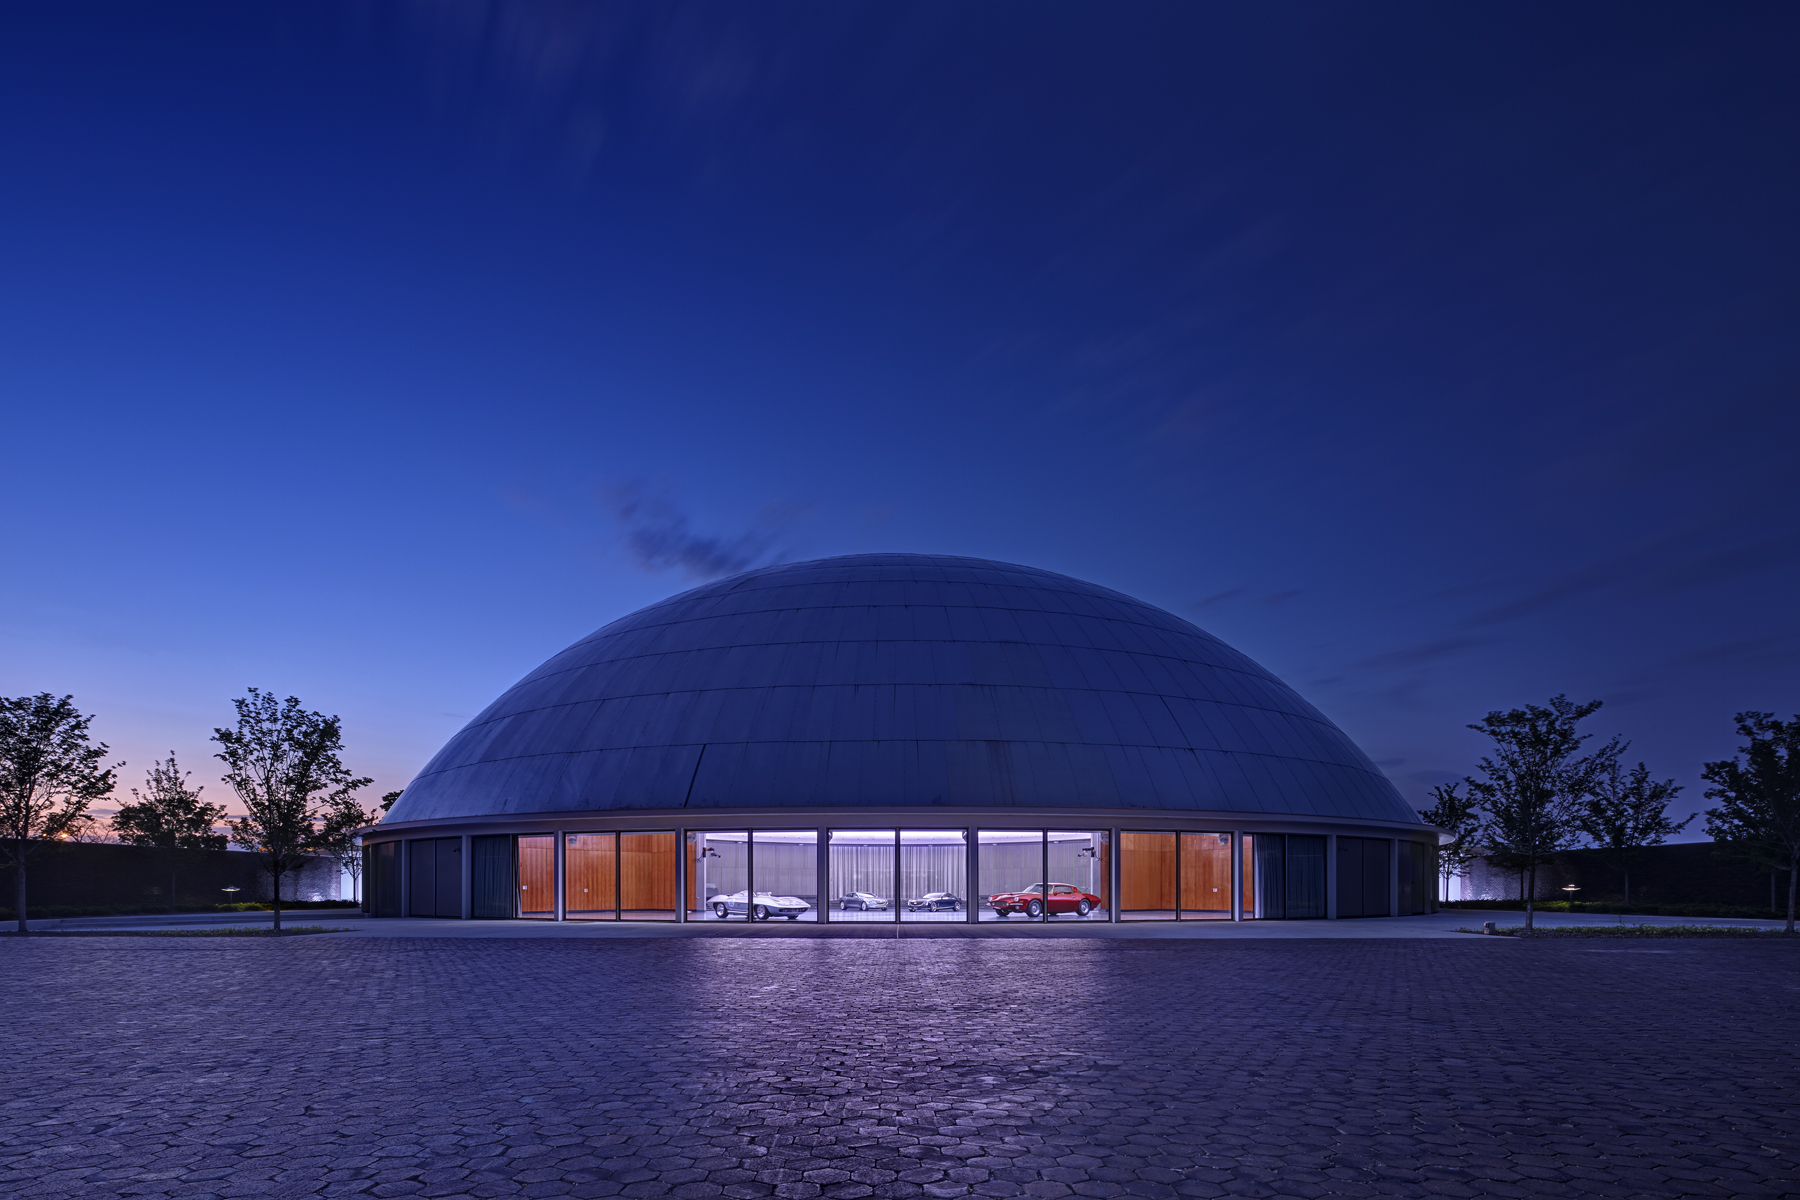 Resurrecting Eero Saarinen U0026 39 S Design Dome At General Motors